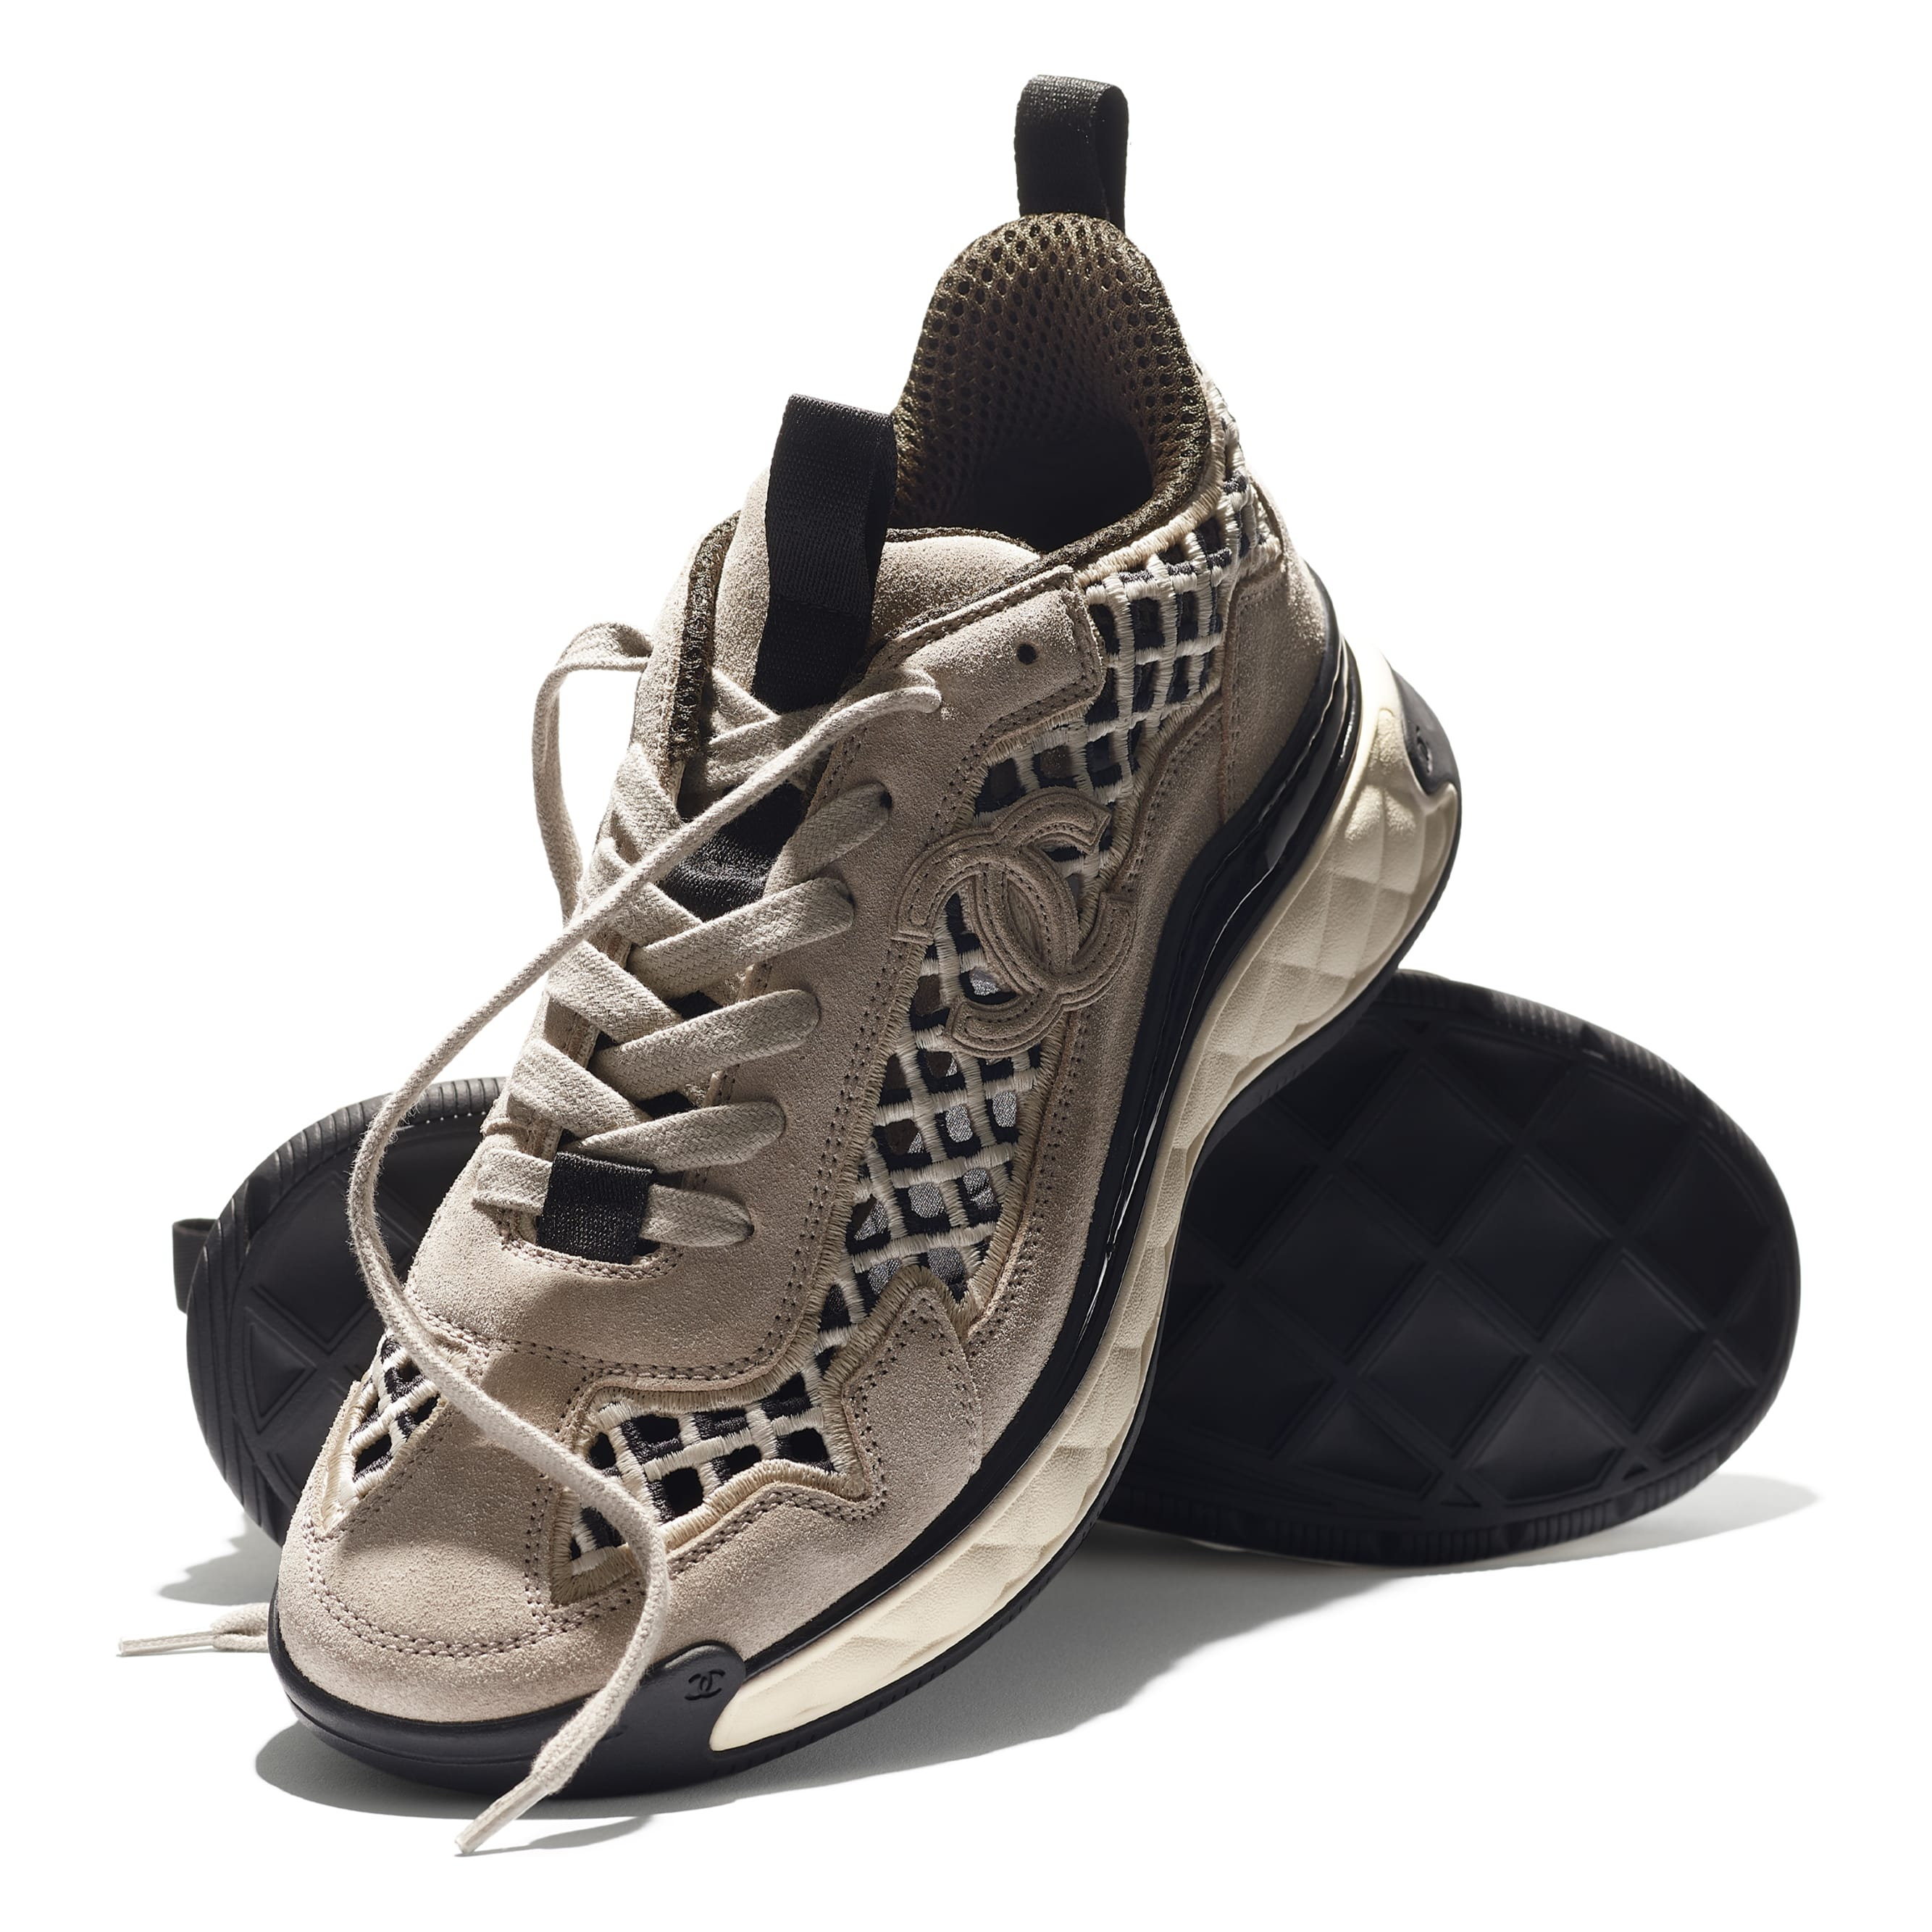 Trainers - Beige - Suede Calfskin & Embroidery - CHANEL - Extra view - see standard sized version